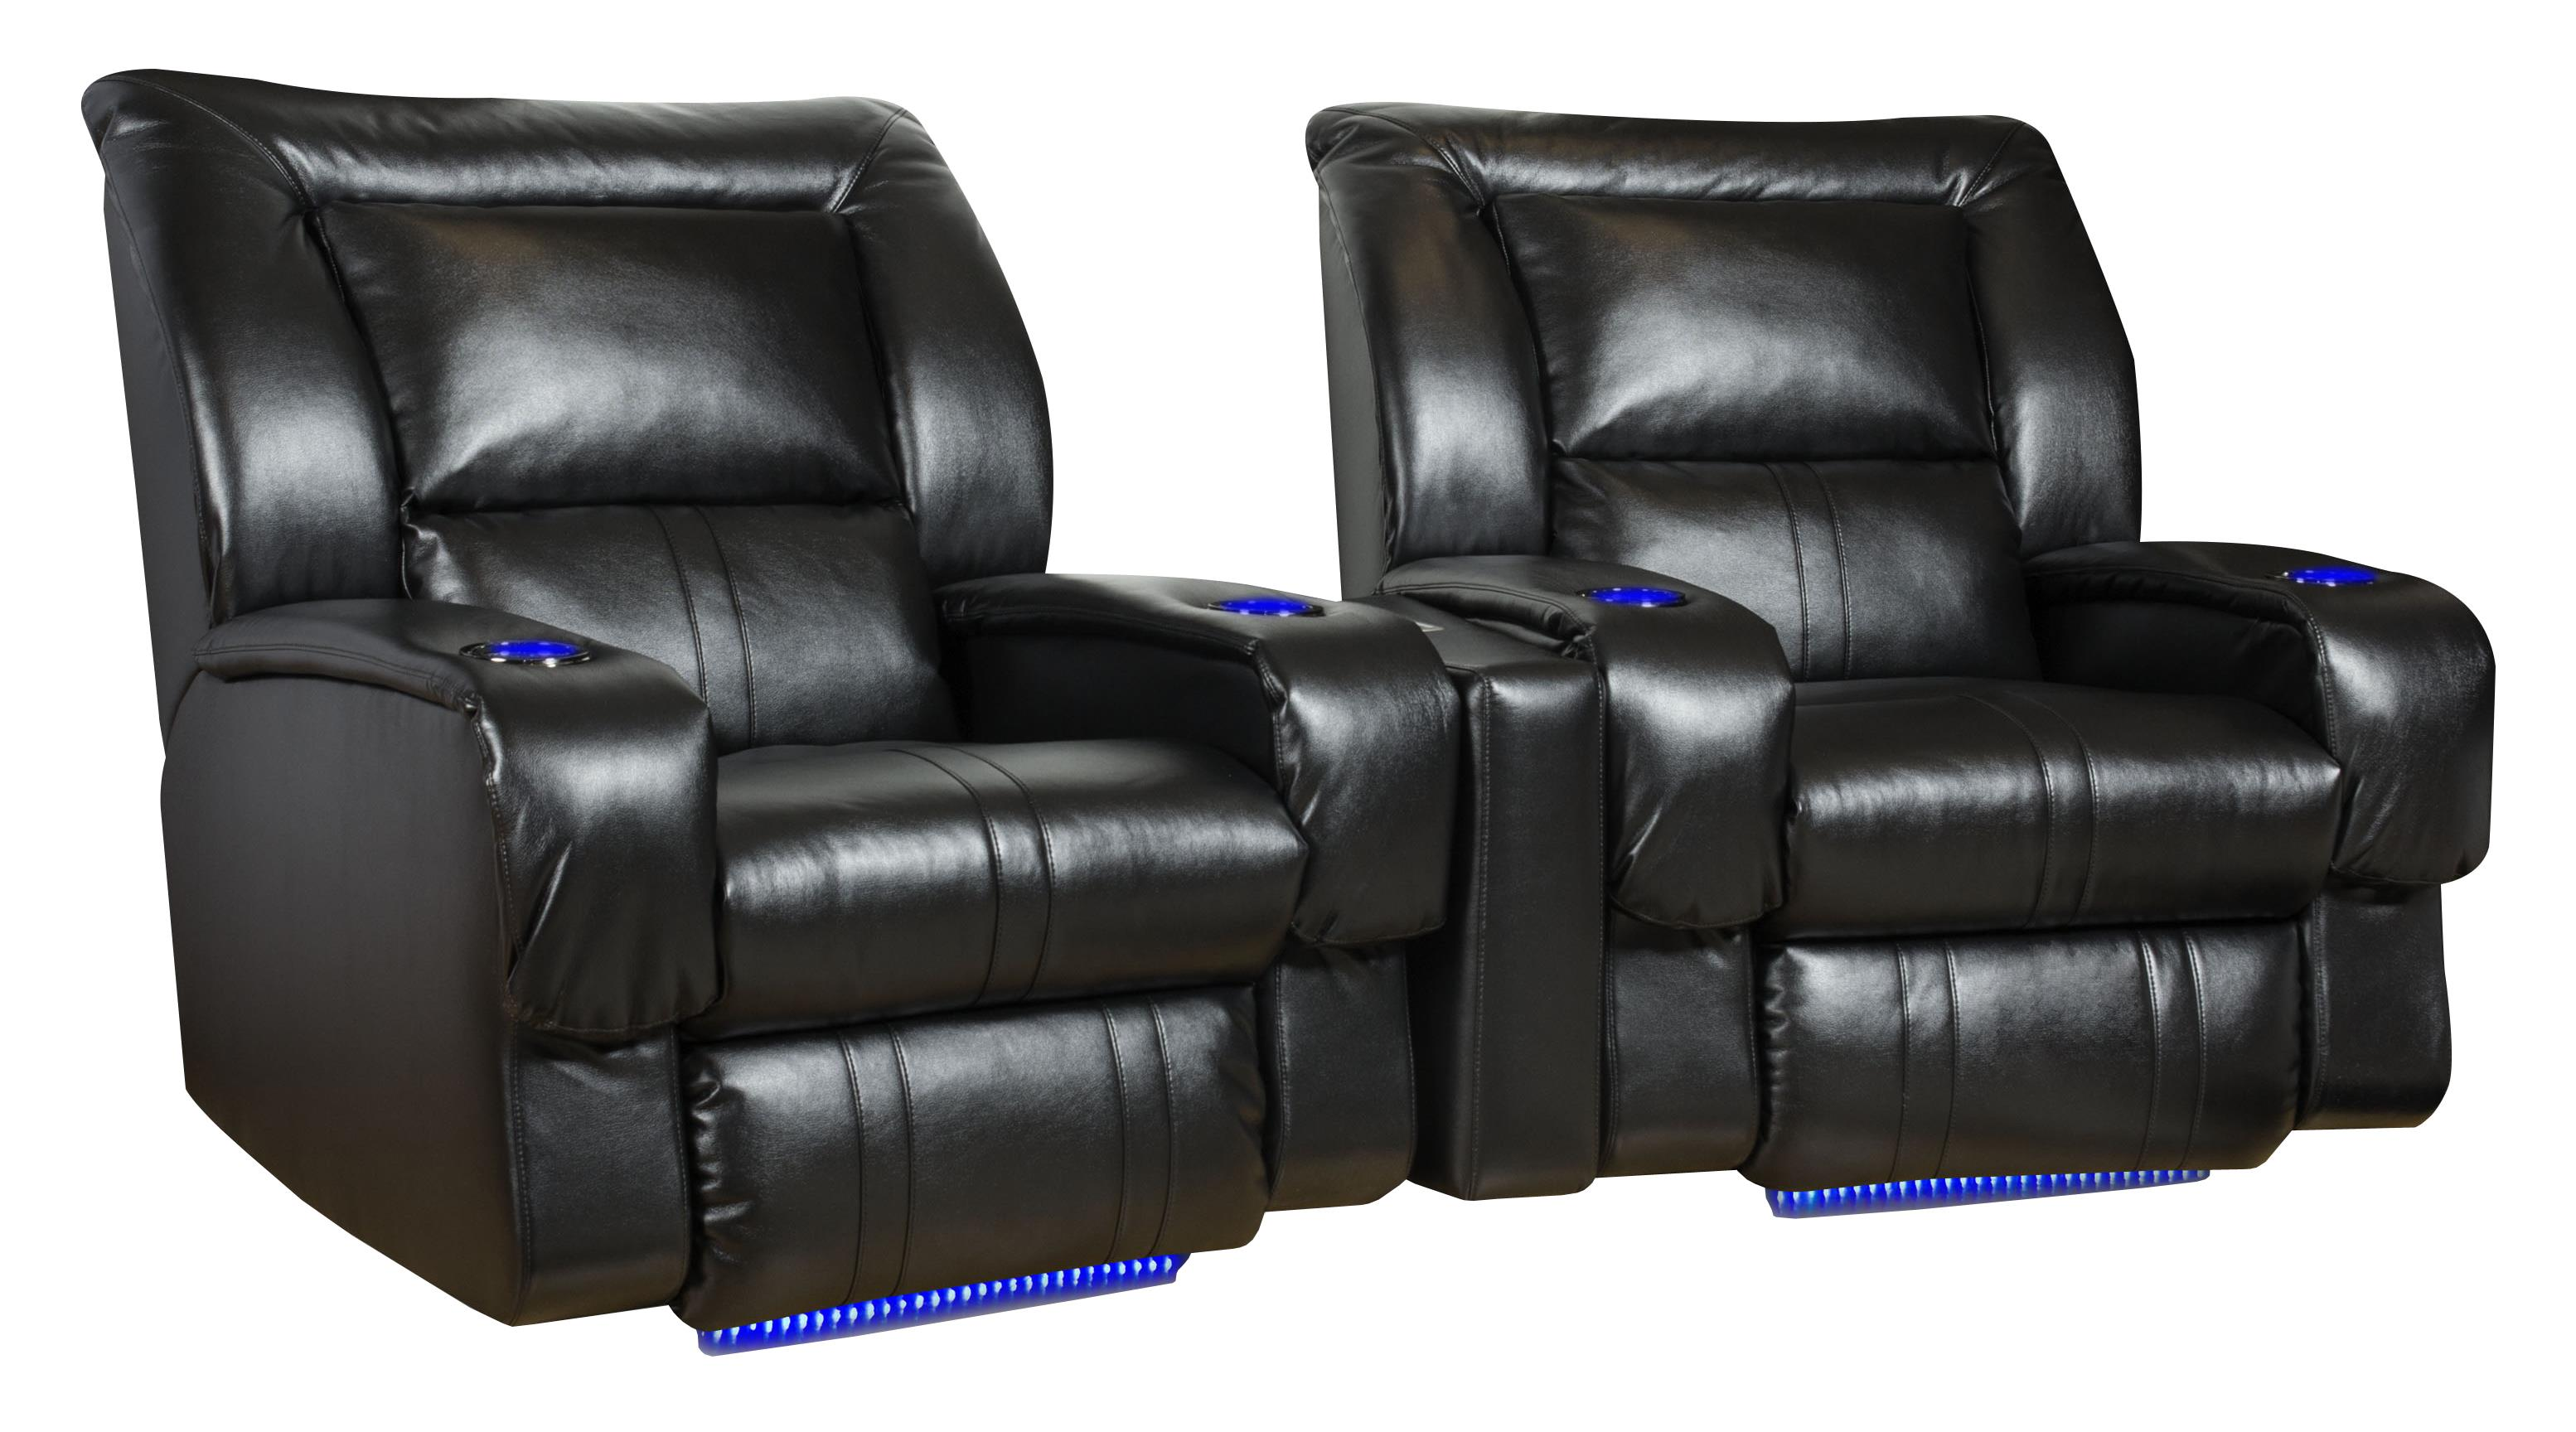 2 seat theater chairs twin sleep chair seating arrangement wall hugger with seats